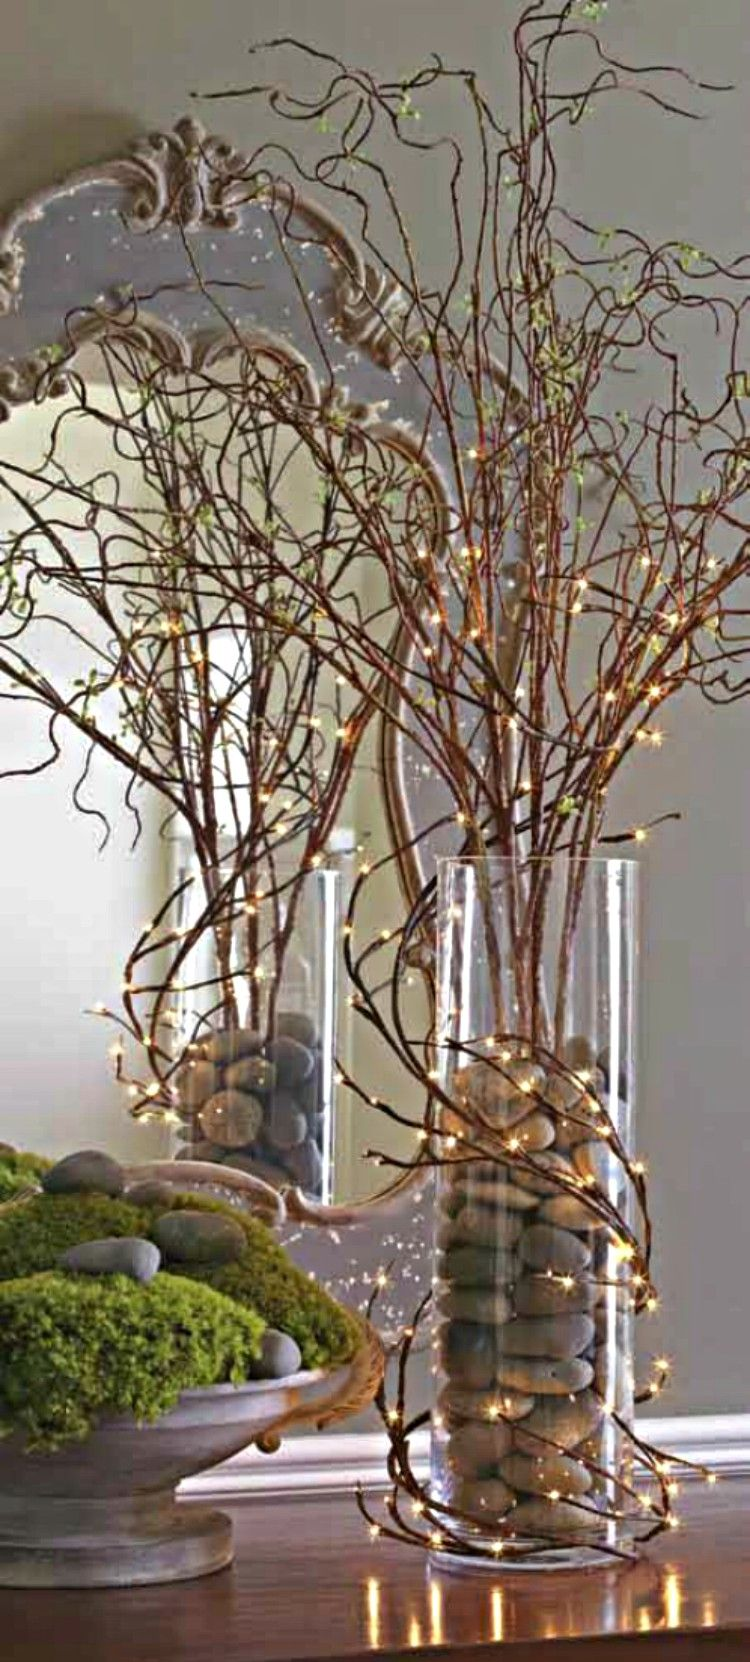 Twigs Lights And Rocks Arrangement Ideas For Engmnt